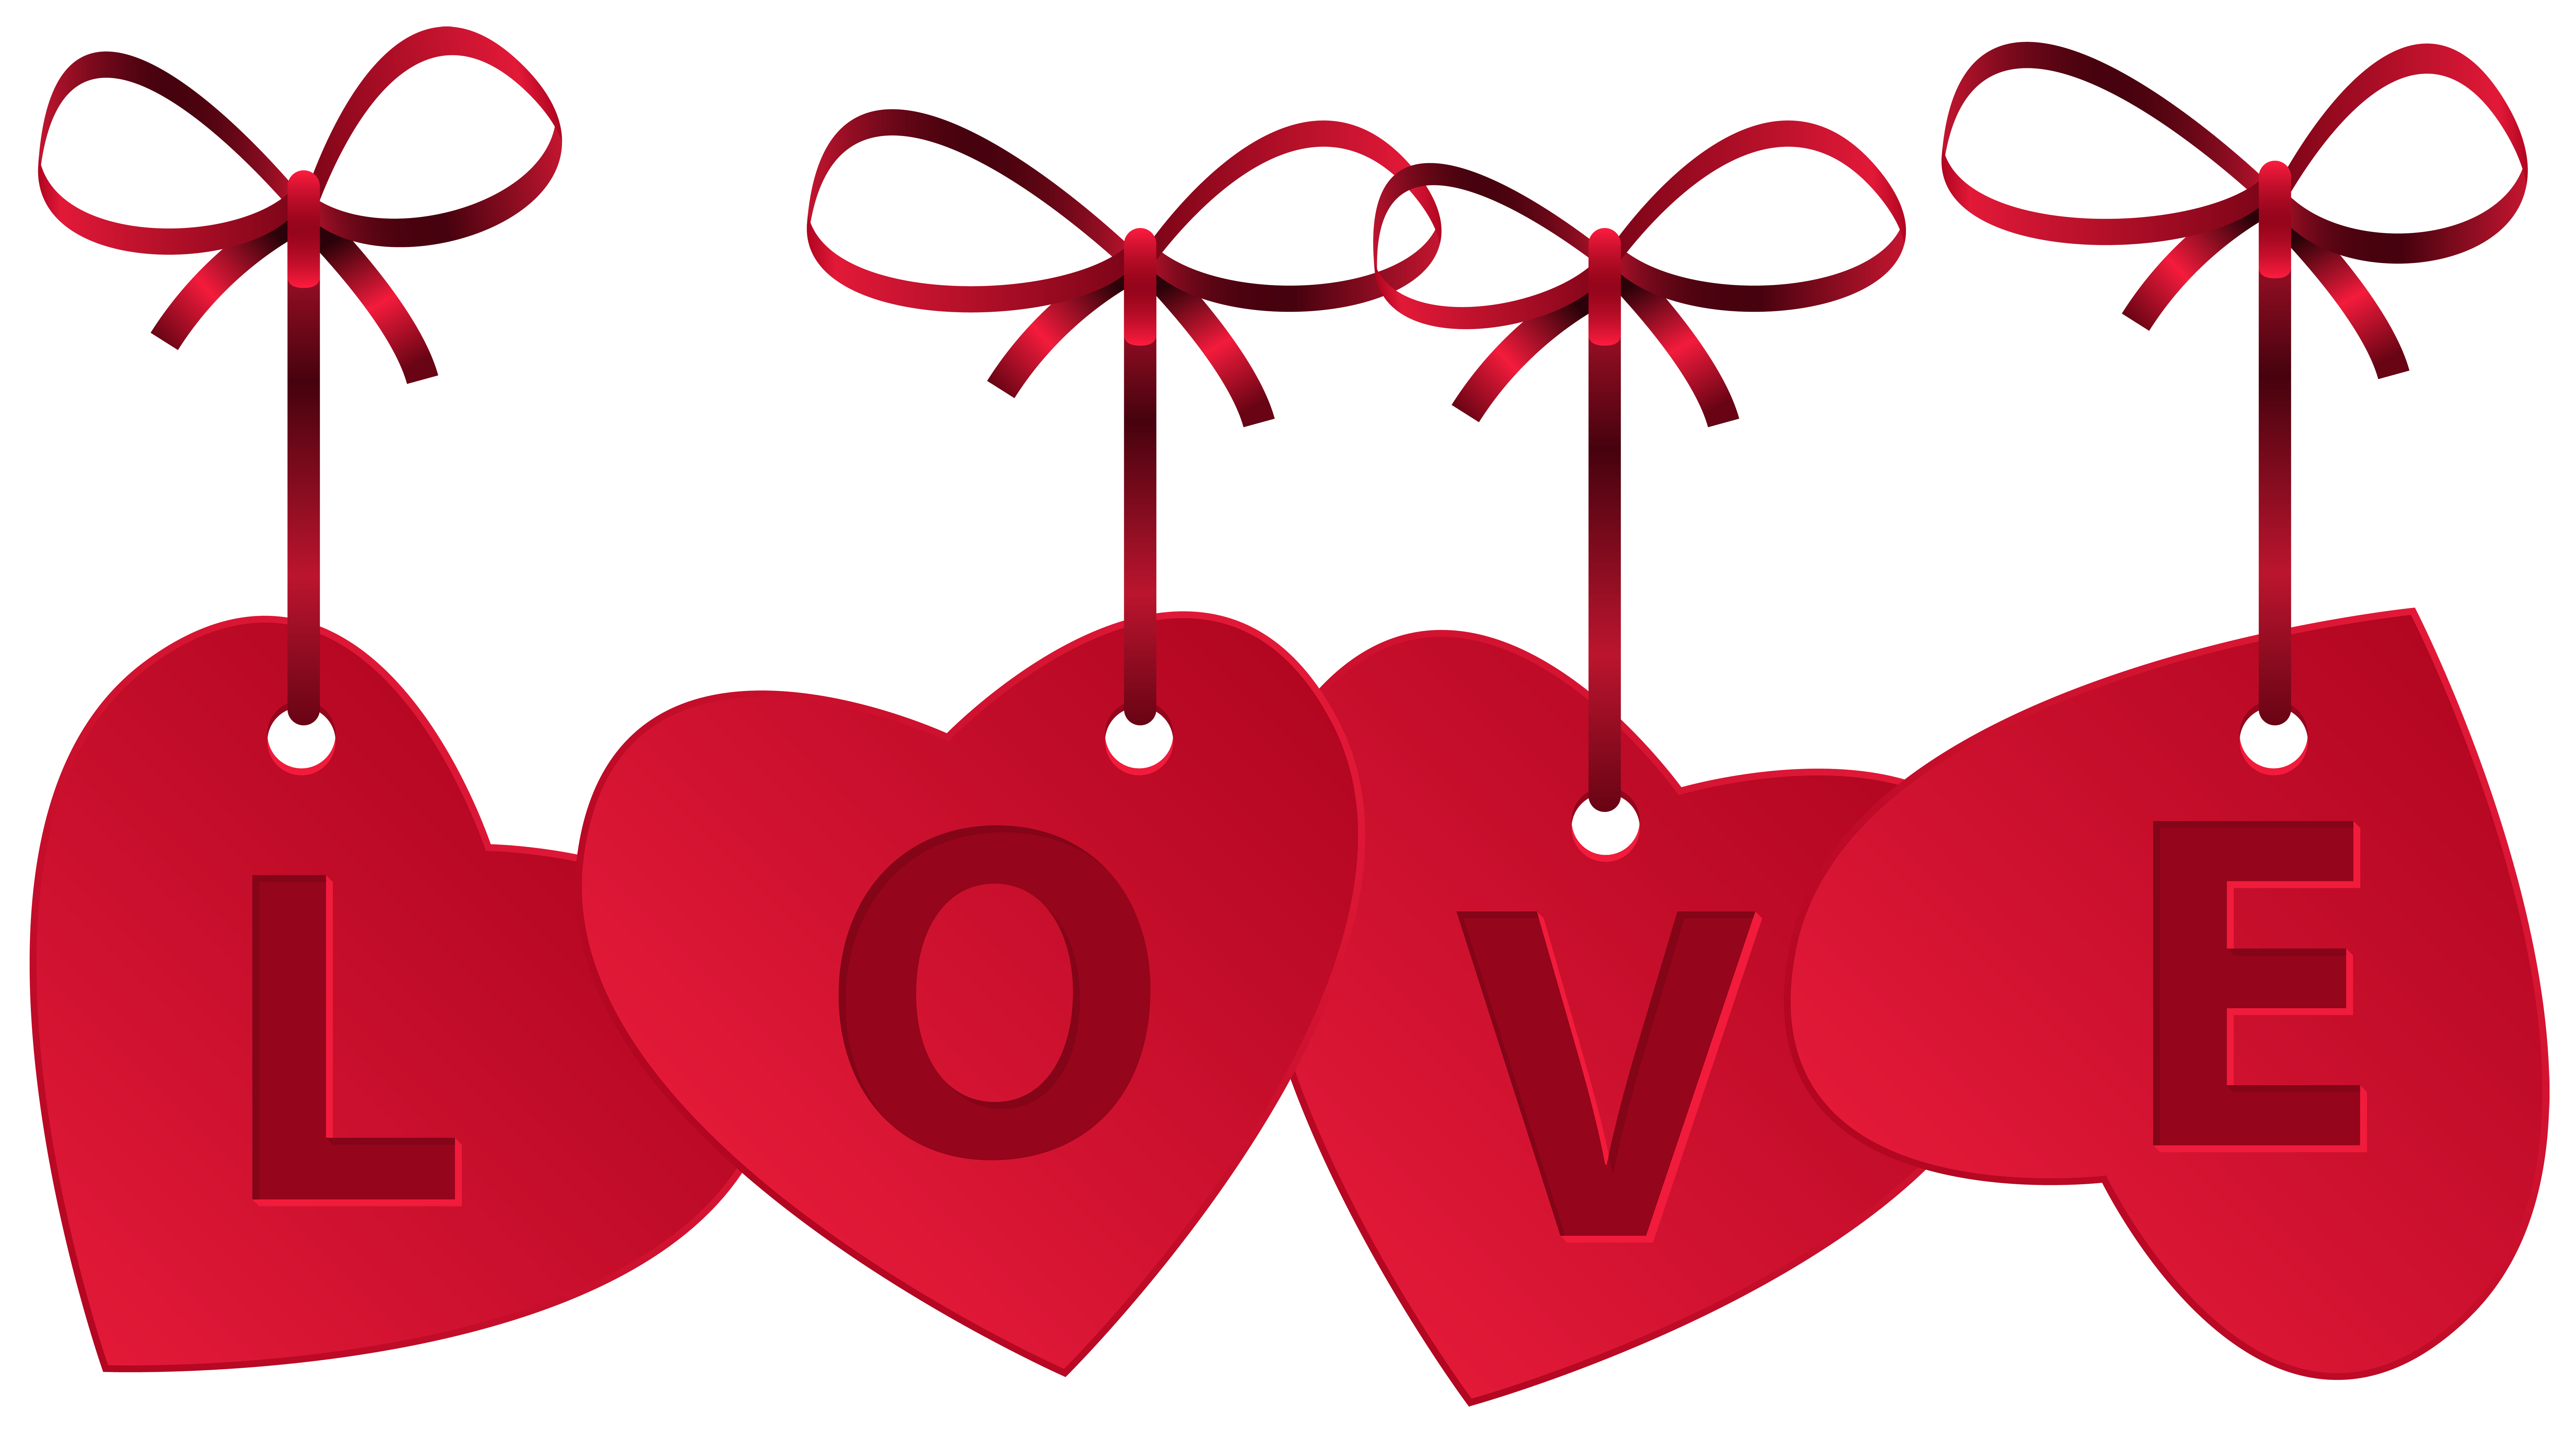 Hearts with Love Decoration PNG Clip Art Image | Gallery ...